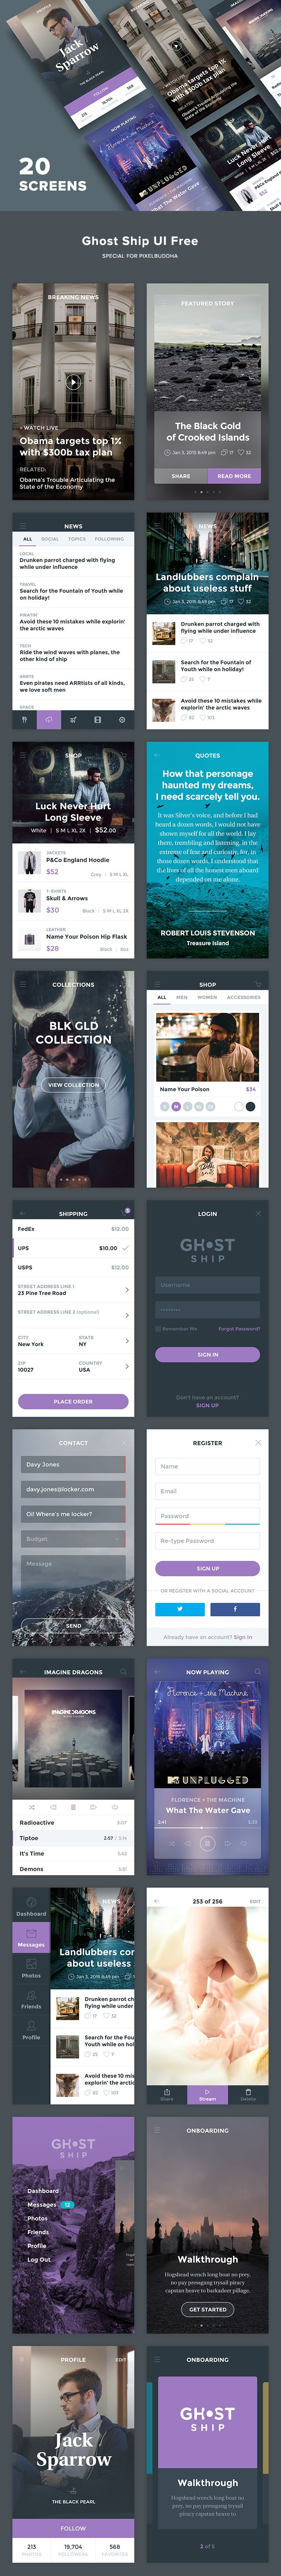 Ghost Ship Mobile Free UI Kit